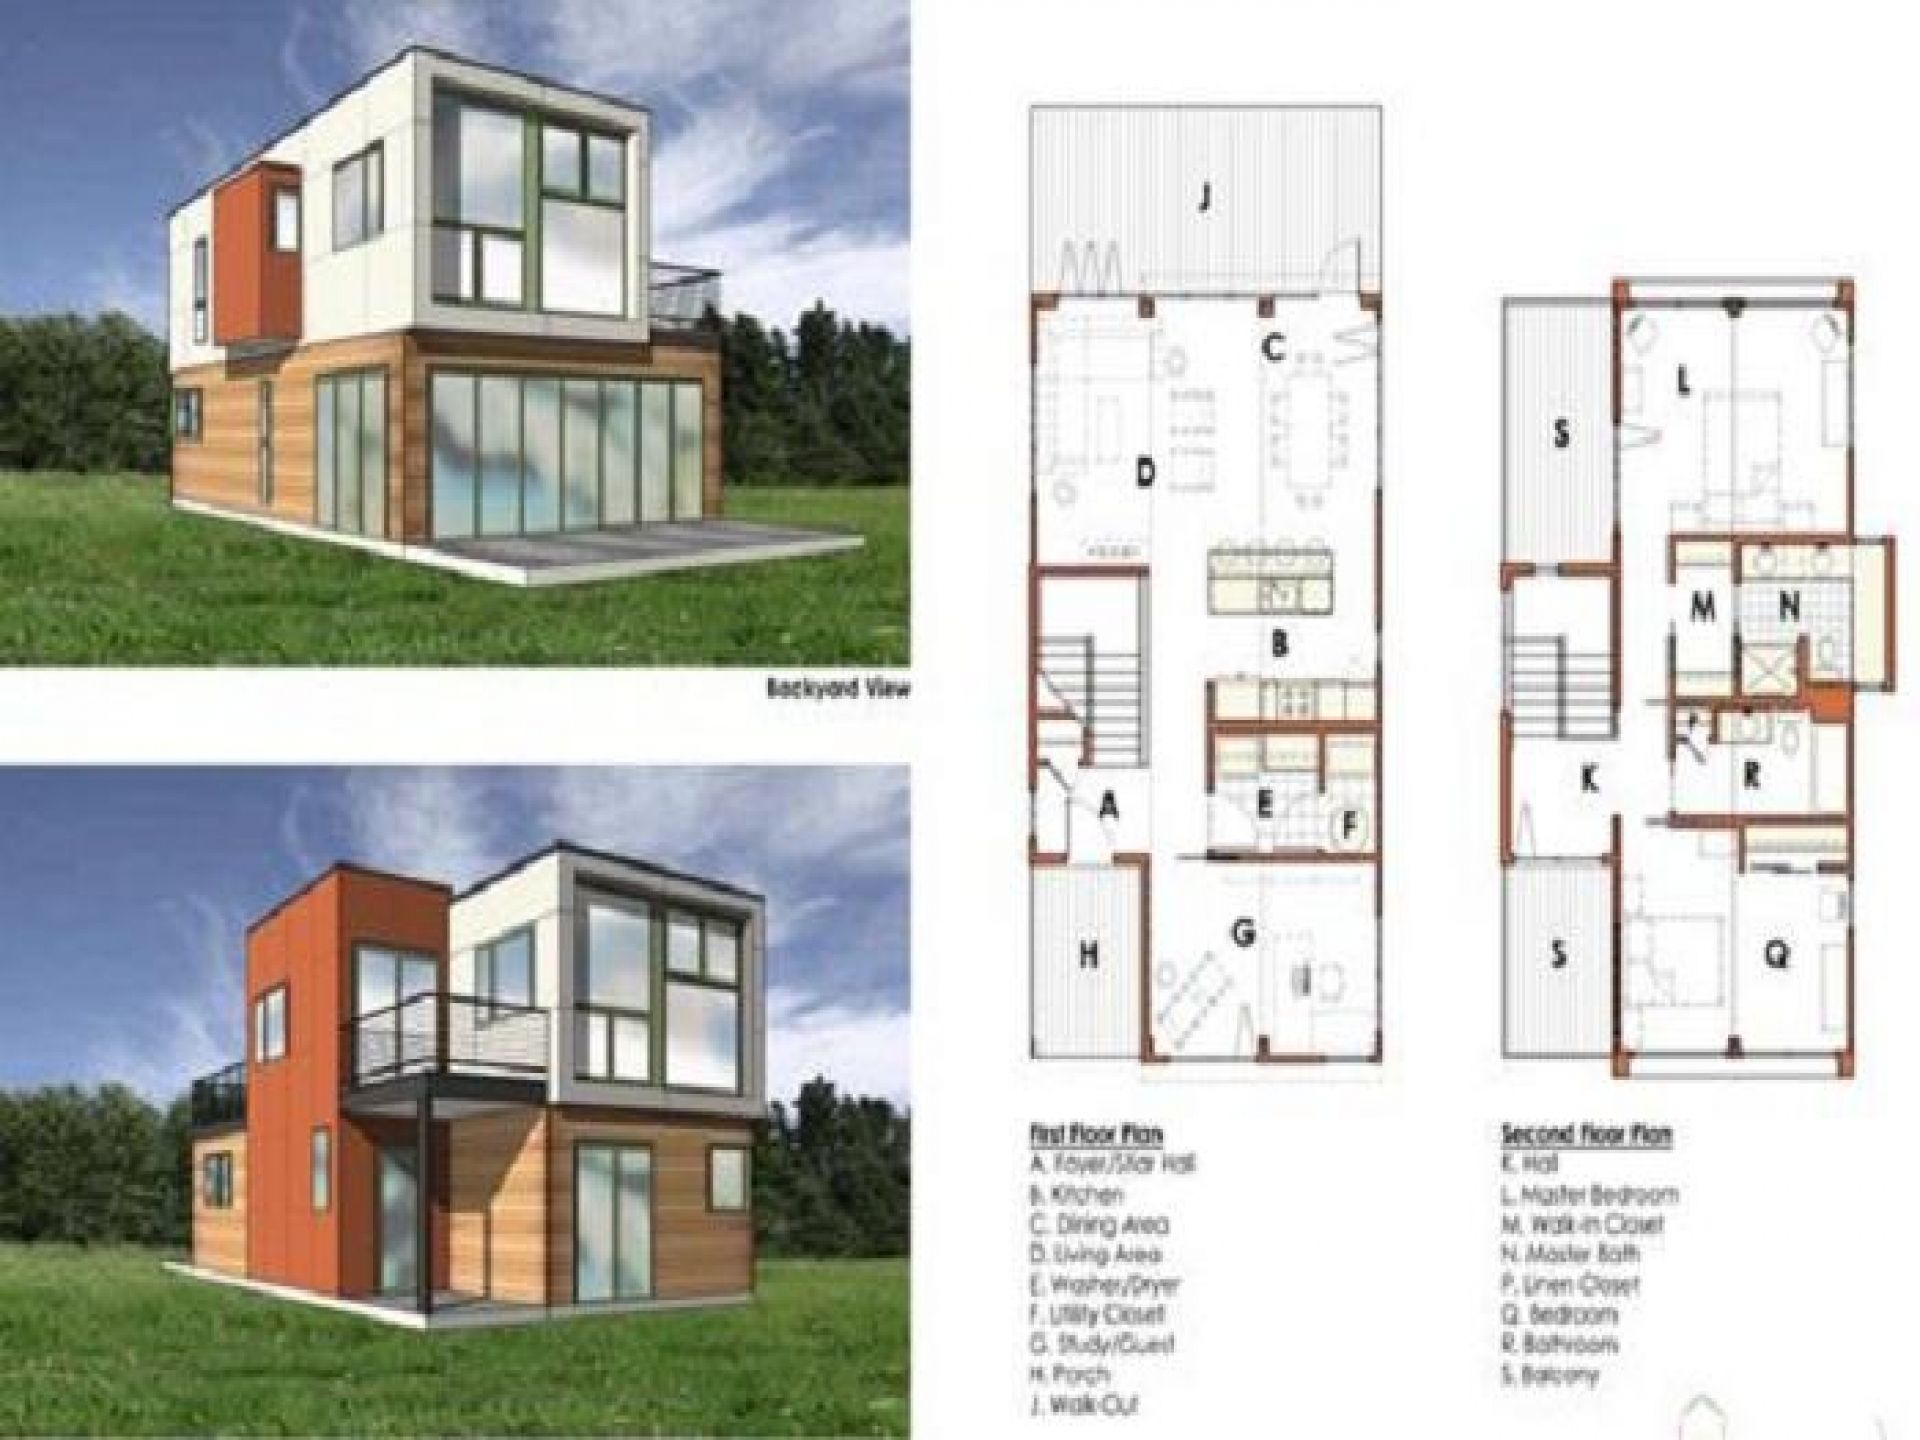 container home design 2 container home floor plans container home floor plans storage floor. Black Bedroom Furniture Sets. Home Design Ideas